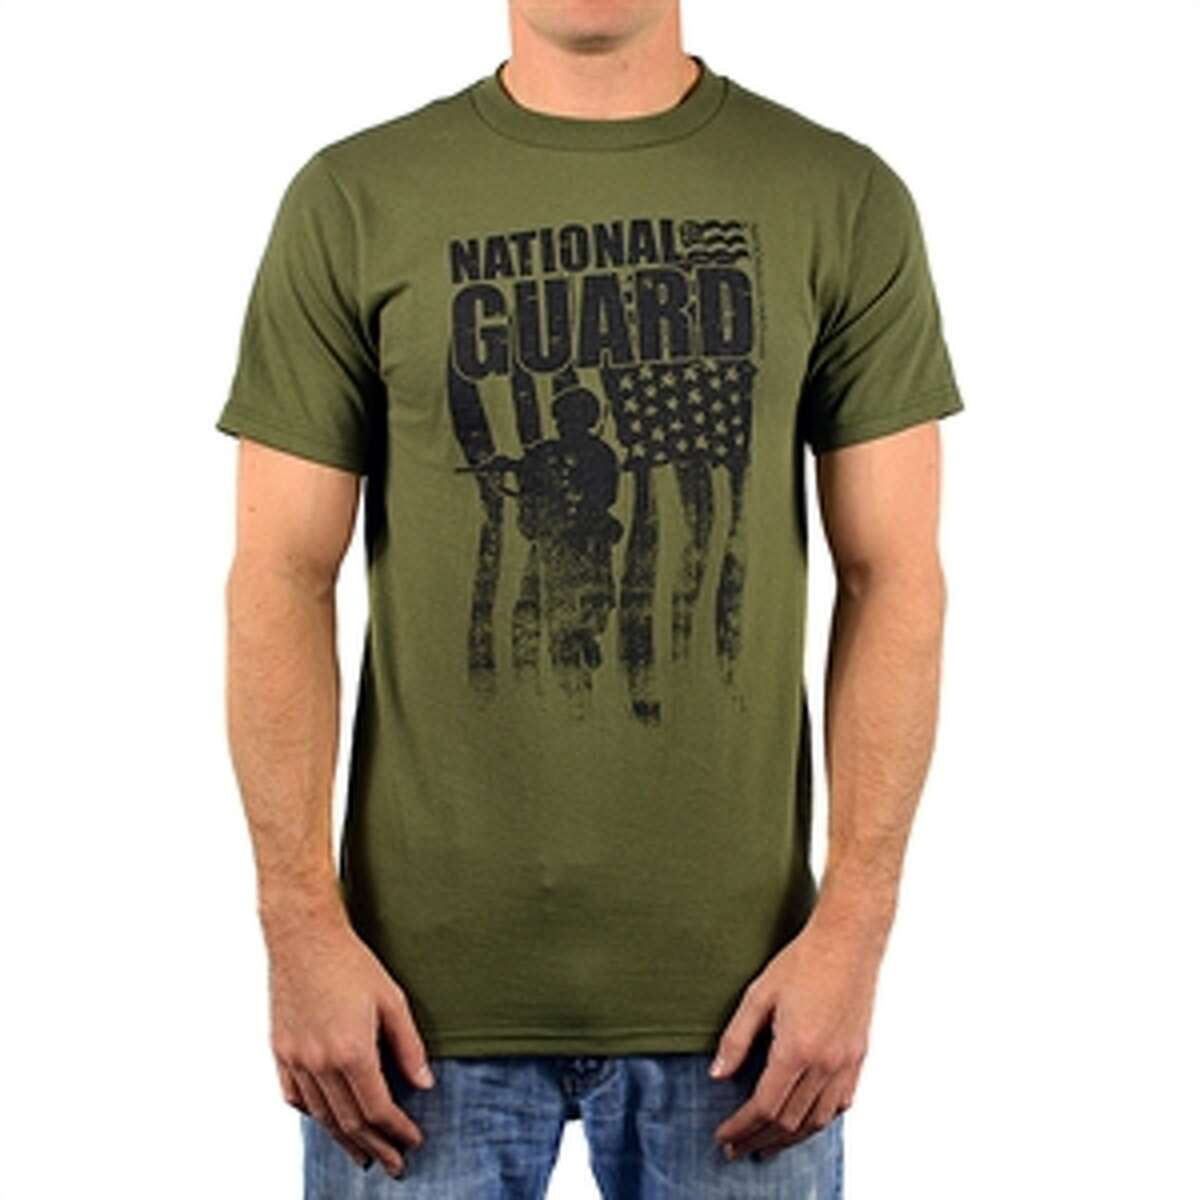 The logo on this National Guard T-shirt was banned from Ravena-Coeymans-Selkirk High School as it does not meet dress code.